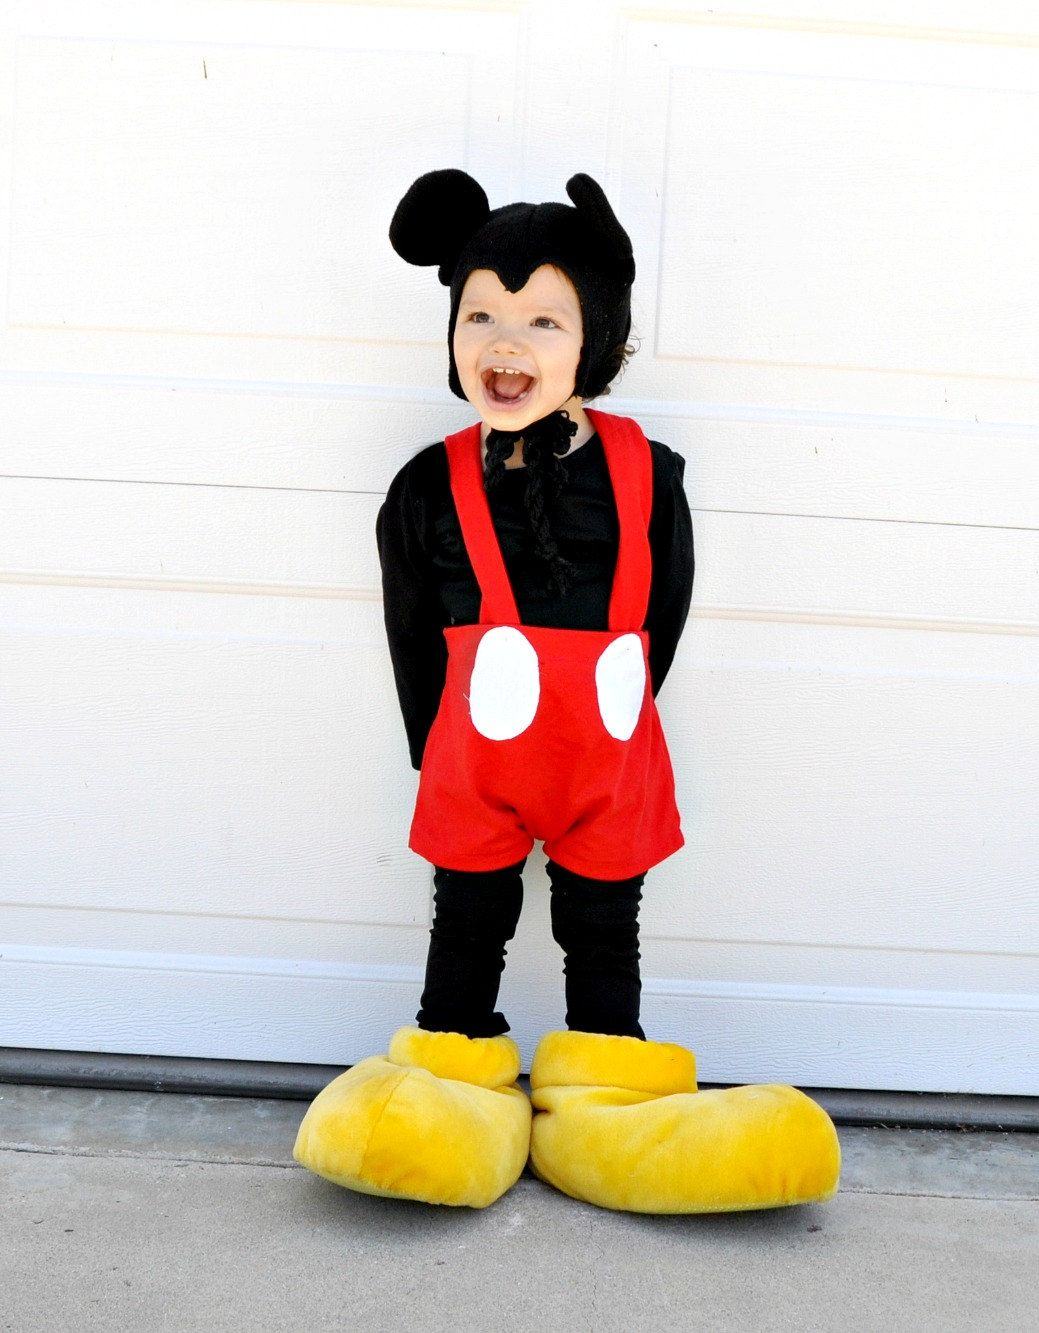 mickey mouse inspired costume set boys babies kids childrens toddler infants halloween costumes school event - Infant Mickey Mouse Halloween Costume